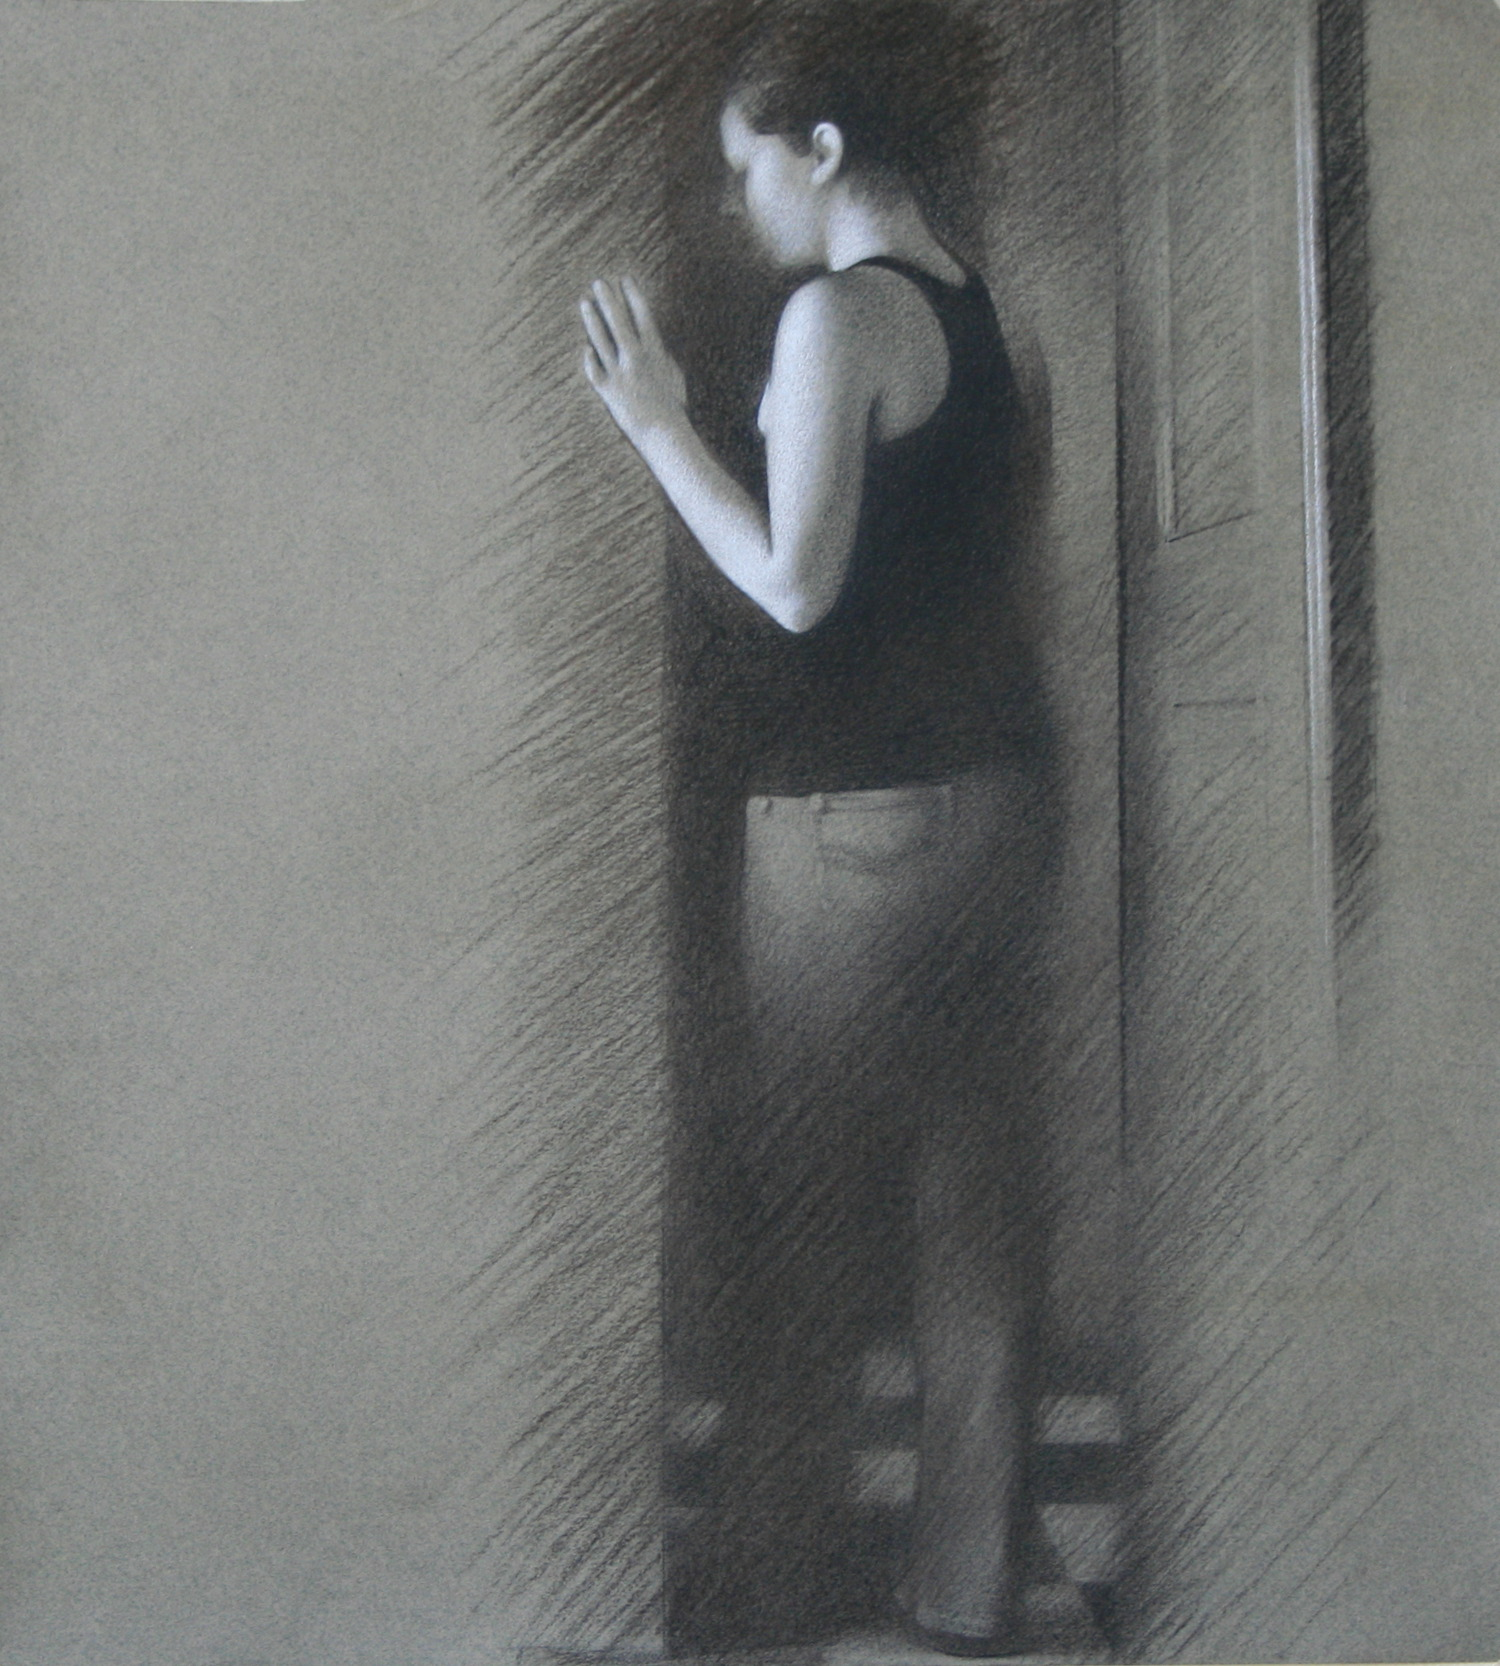 Evanesce Study , 2009, Charcoal on paper, 15 x 14 inches